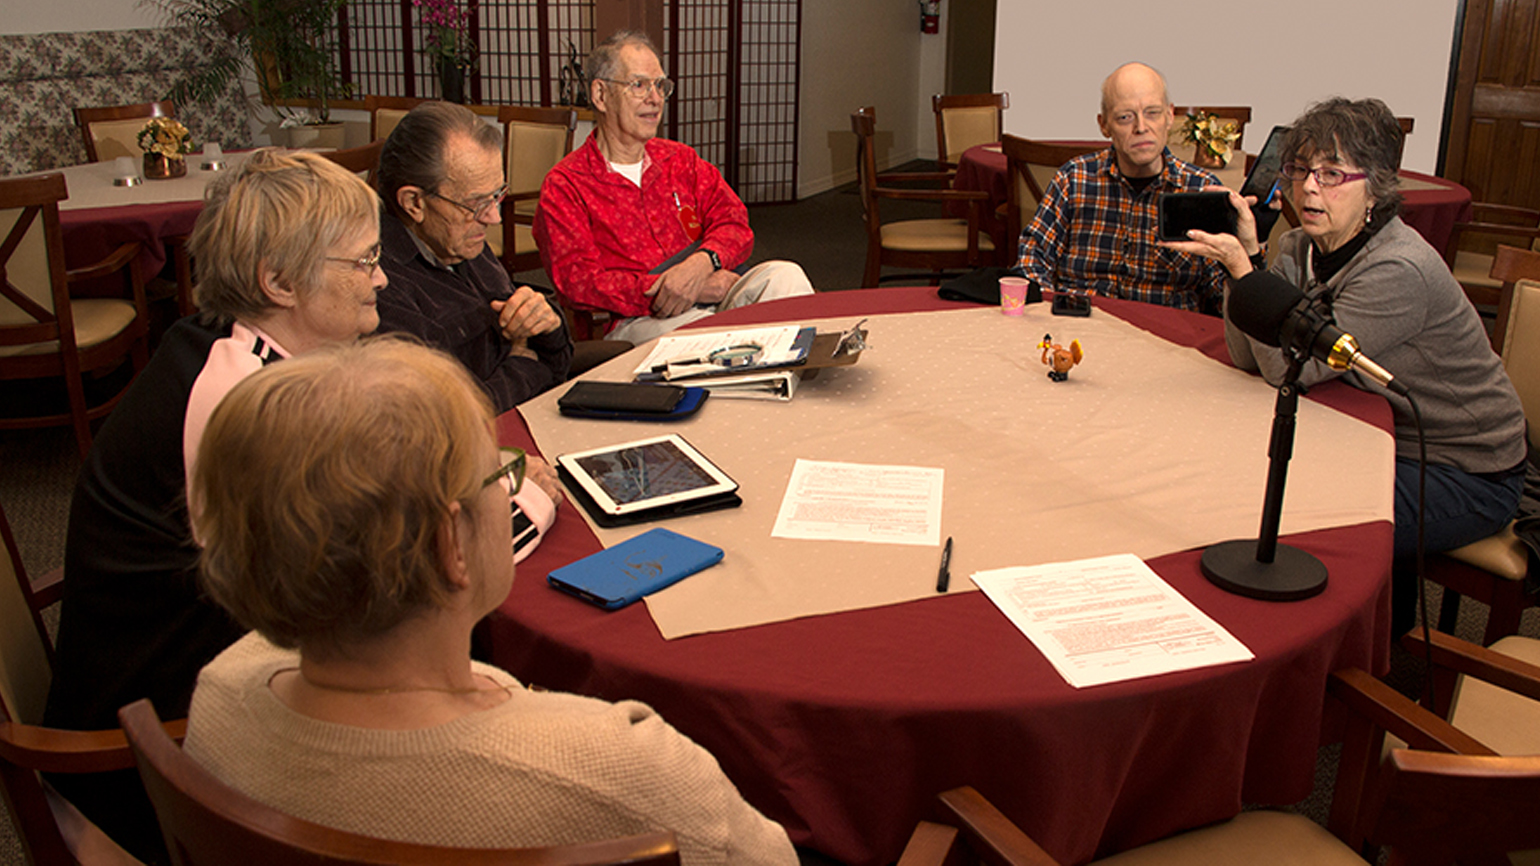 Dietrich Schultz and Johnnie Mullin (right) lead a computer class for residents in a Eugene, Oregon, retirement community.